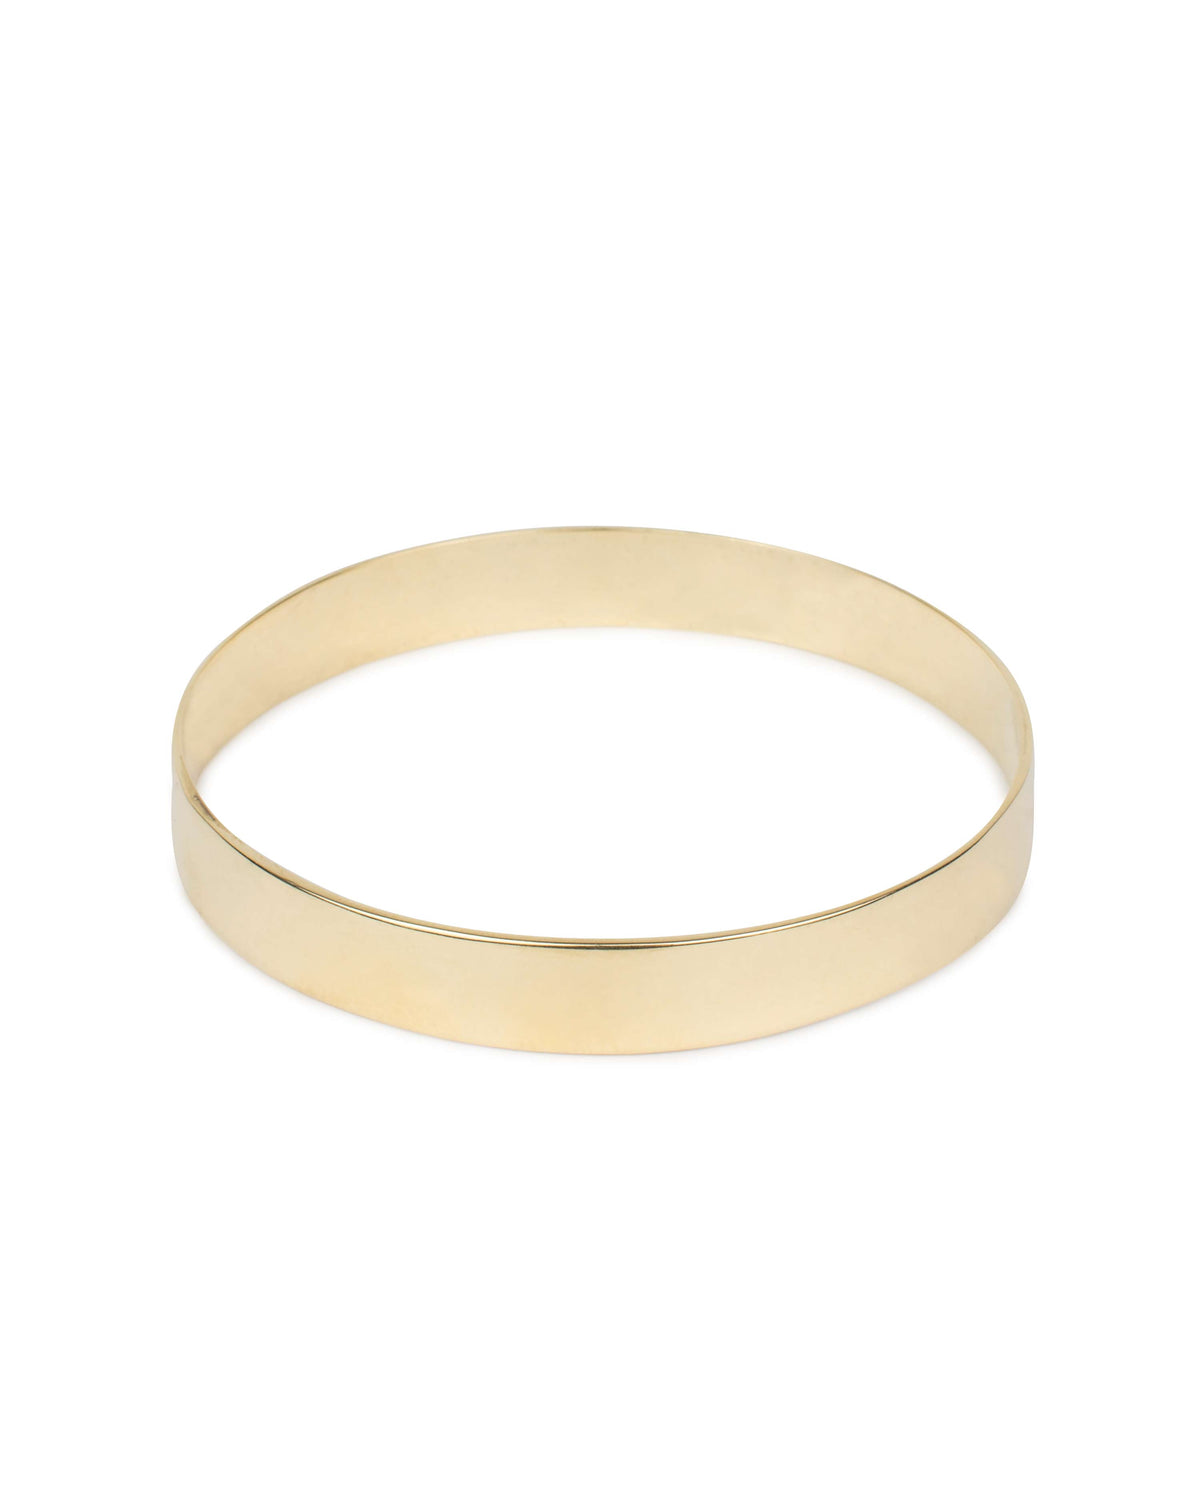 NAKED BANGLE THIN